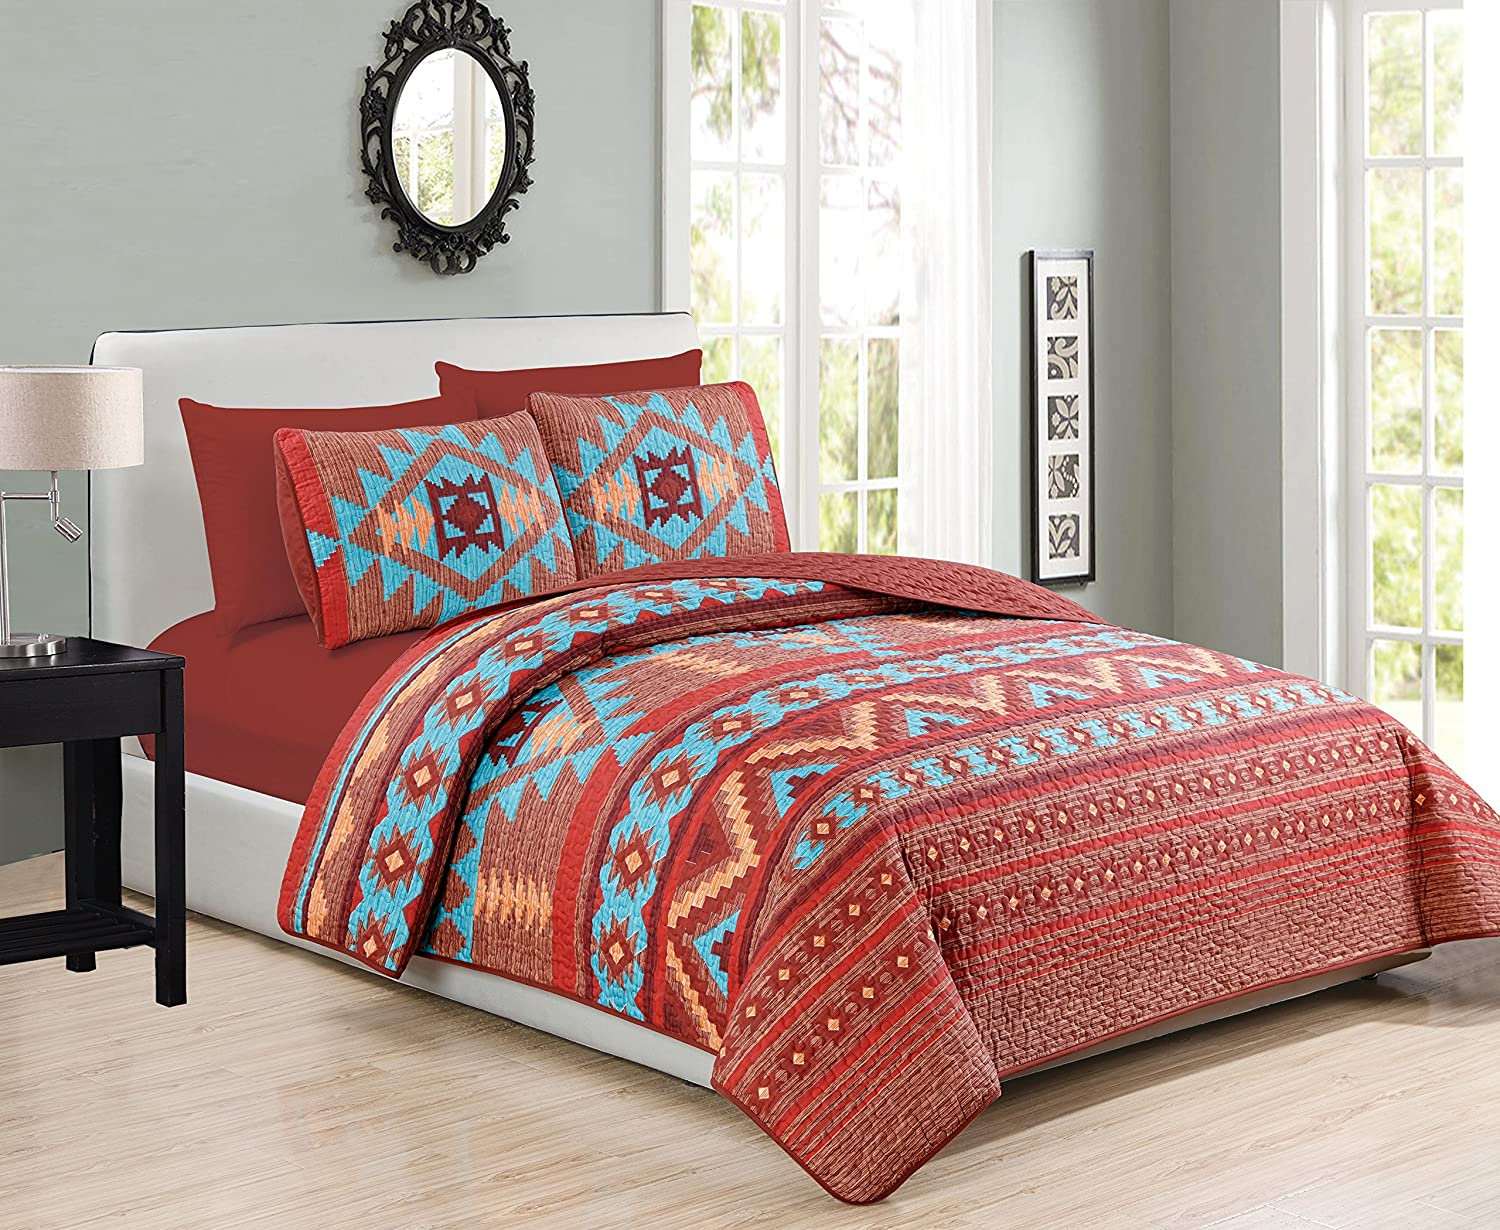 Western Southwestern Native Indian American 6 Piece Bedding Quilt Bedspread And Fitted Sheet Set NO FLAT SHEET In Turquoise Red Orange Brown (6PC King)